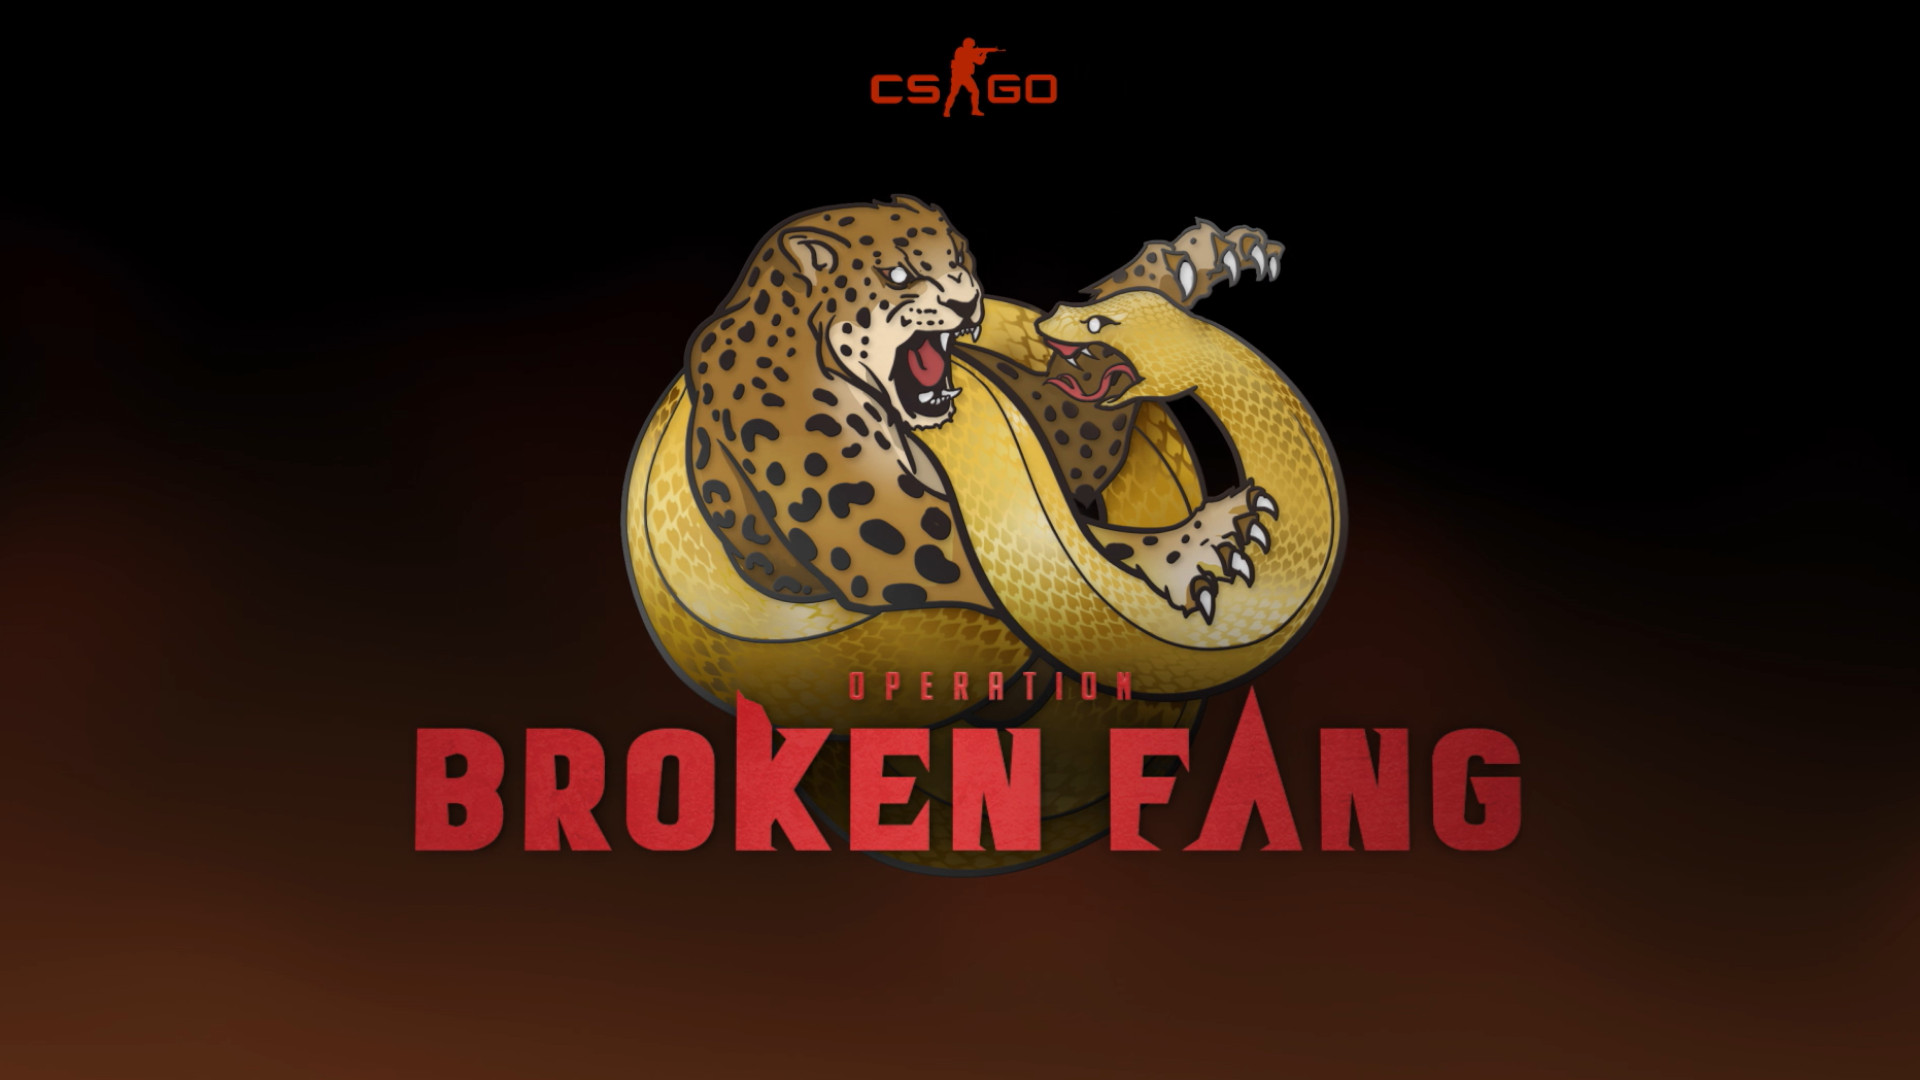 CS:GO's Broken Fang Premier mode is now unlocked for all players